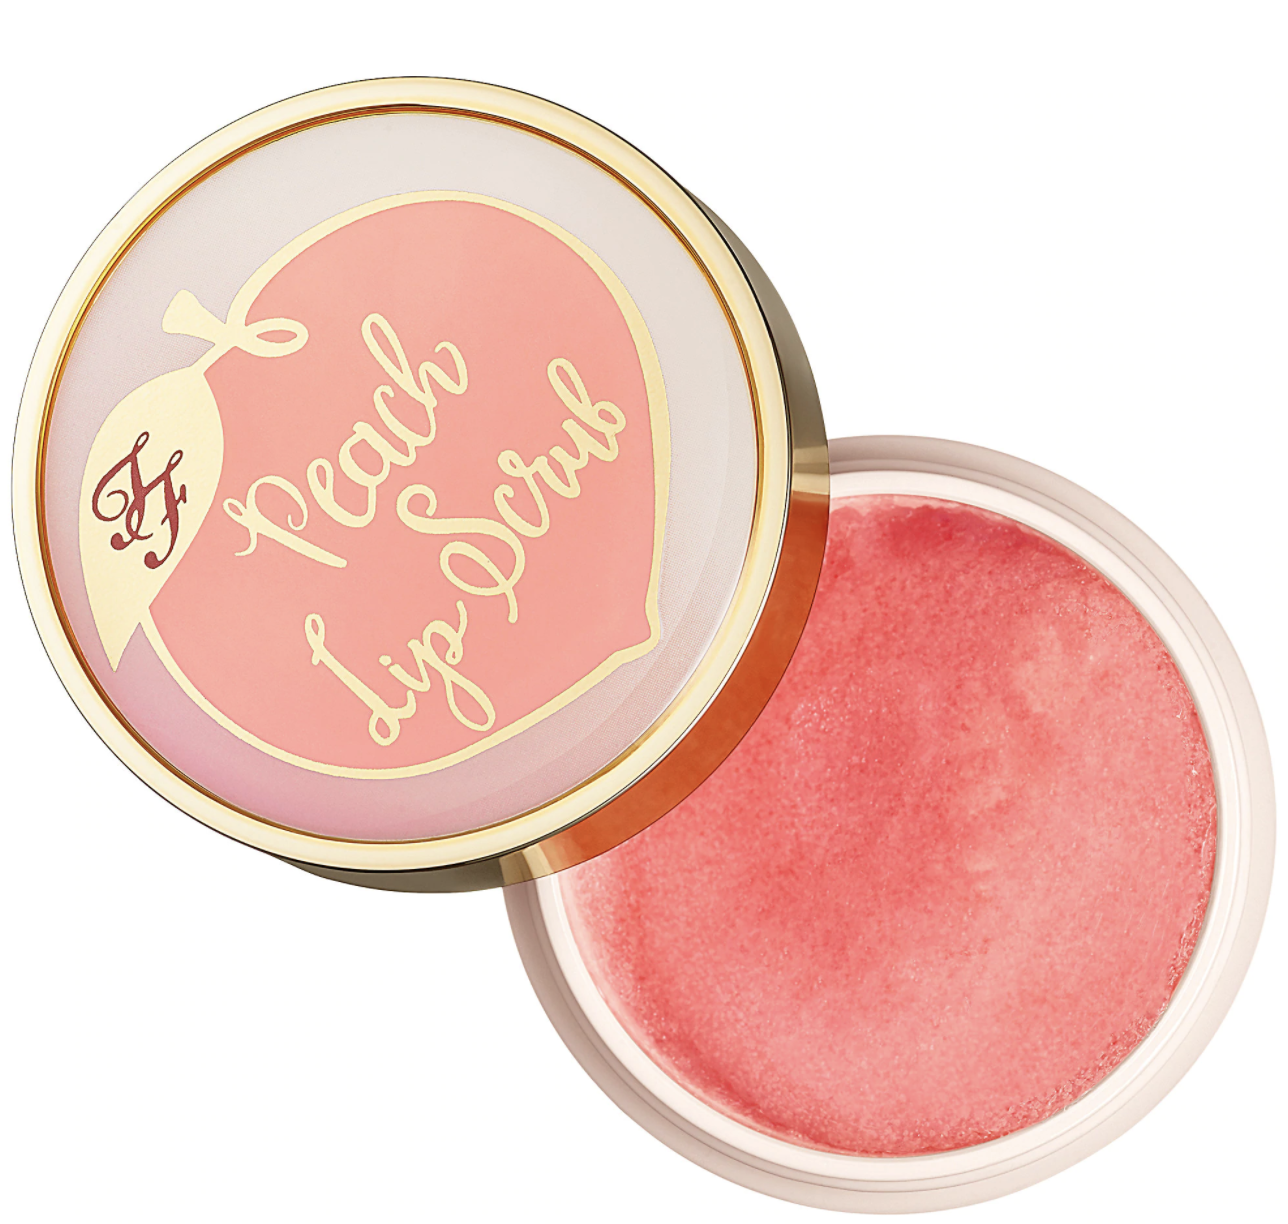 too-faced-peach-lip-scrub